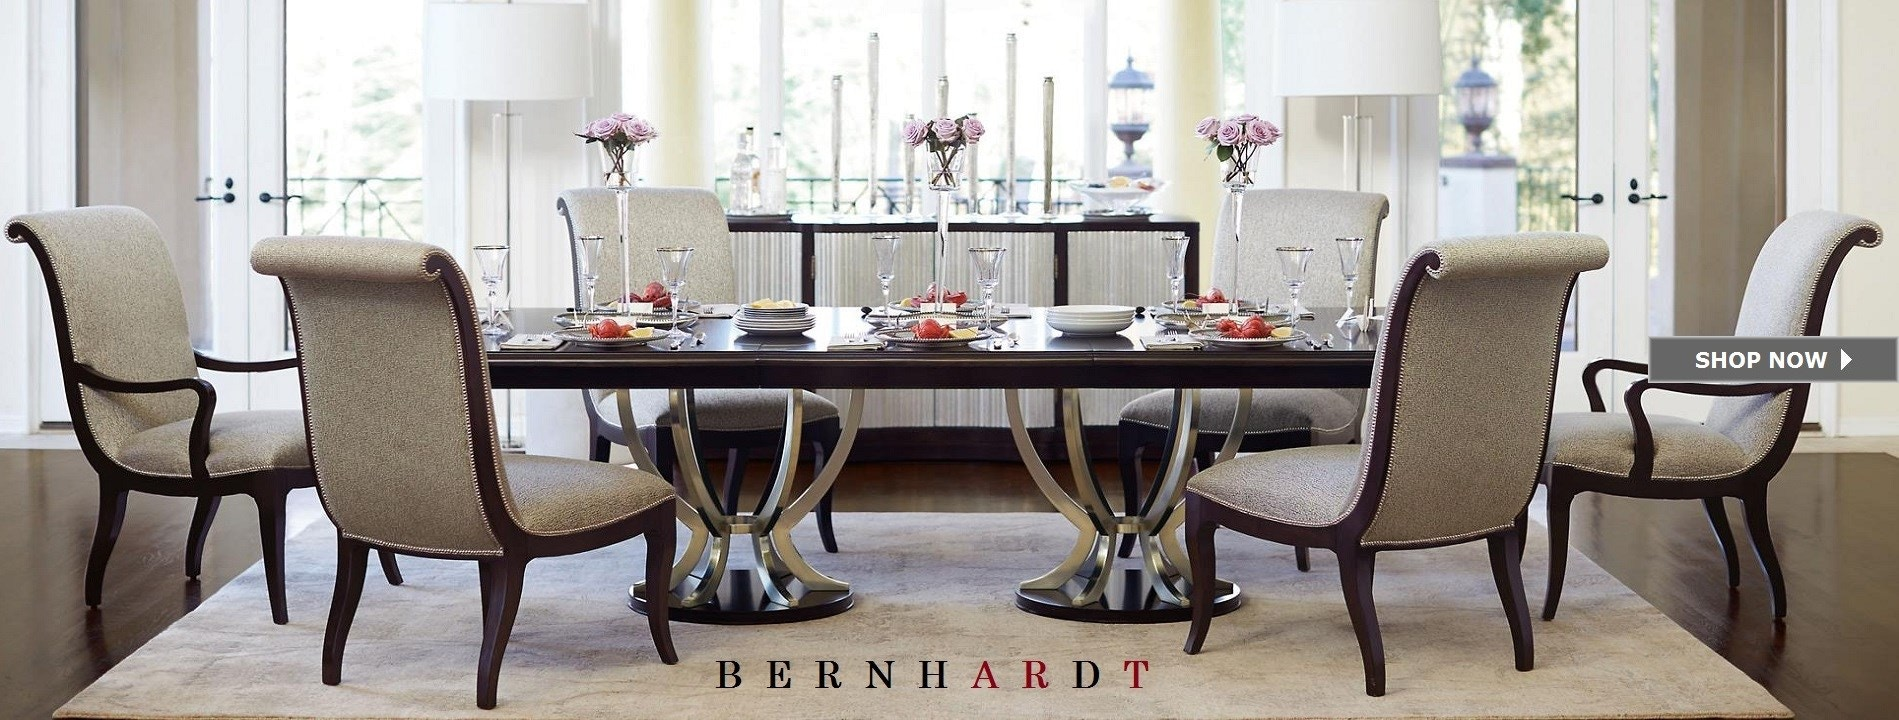 Superbe Bernhardt Furniture